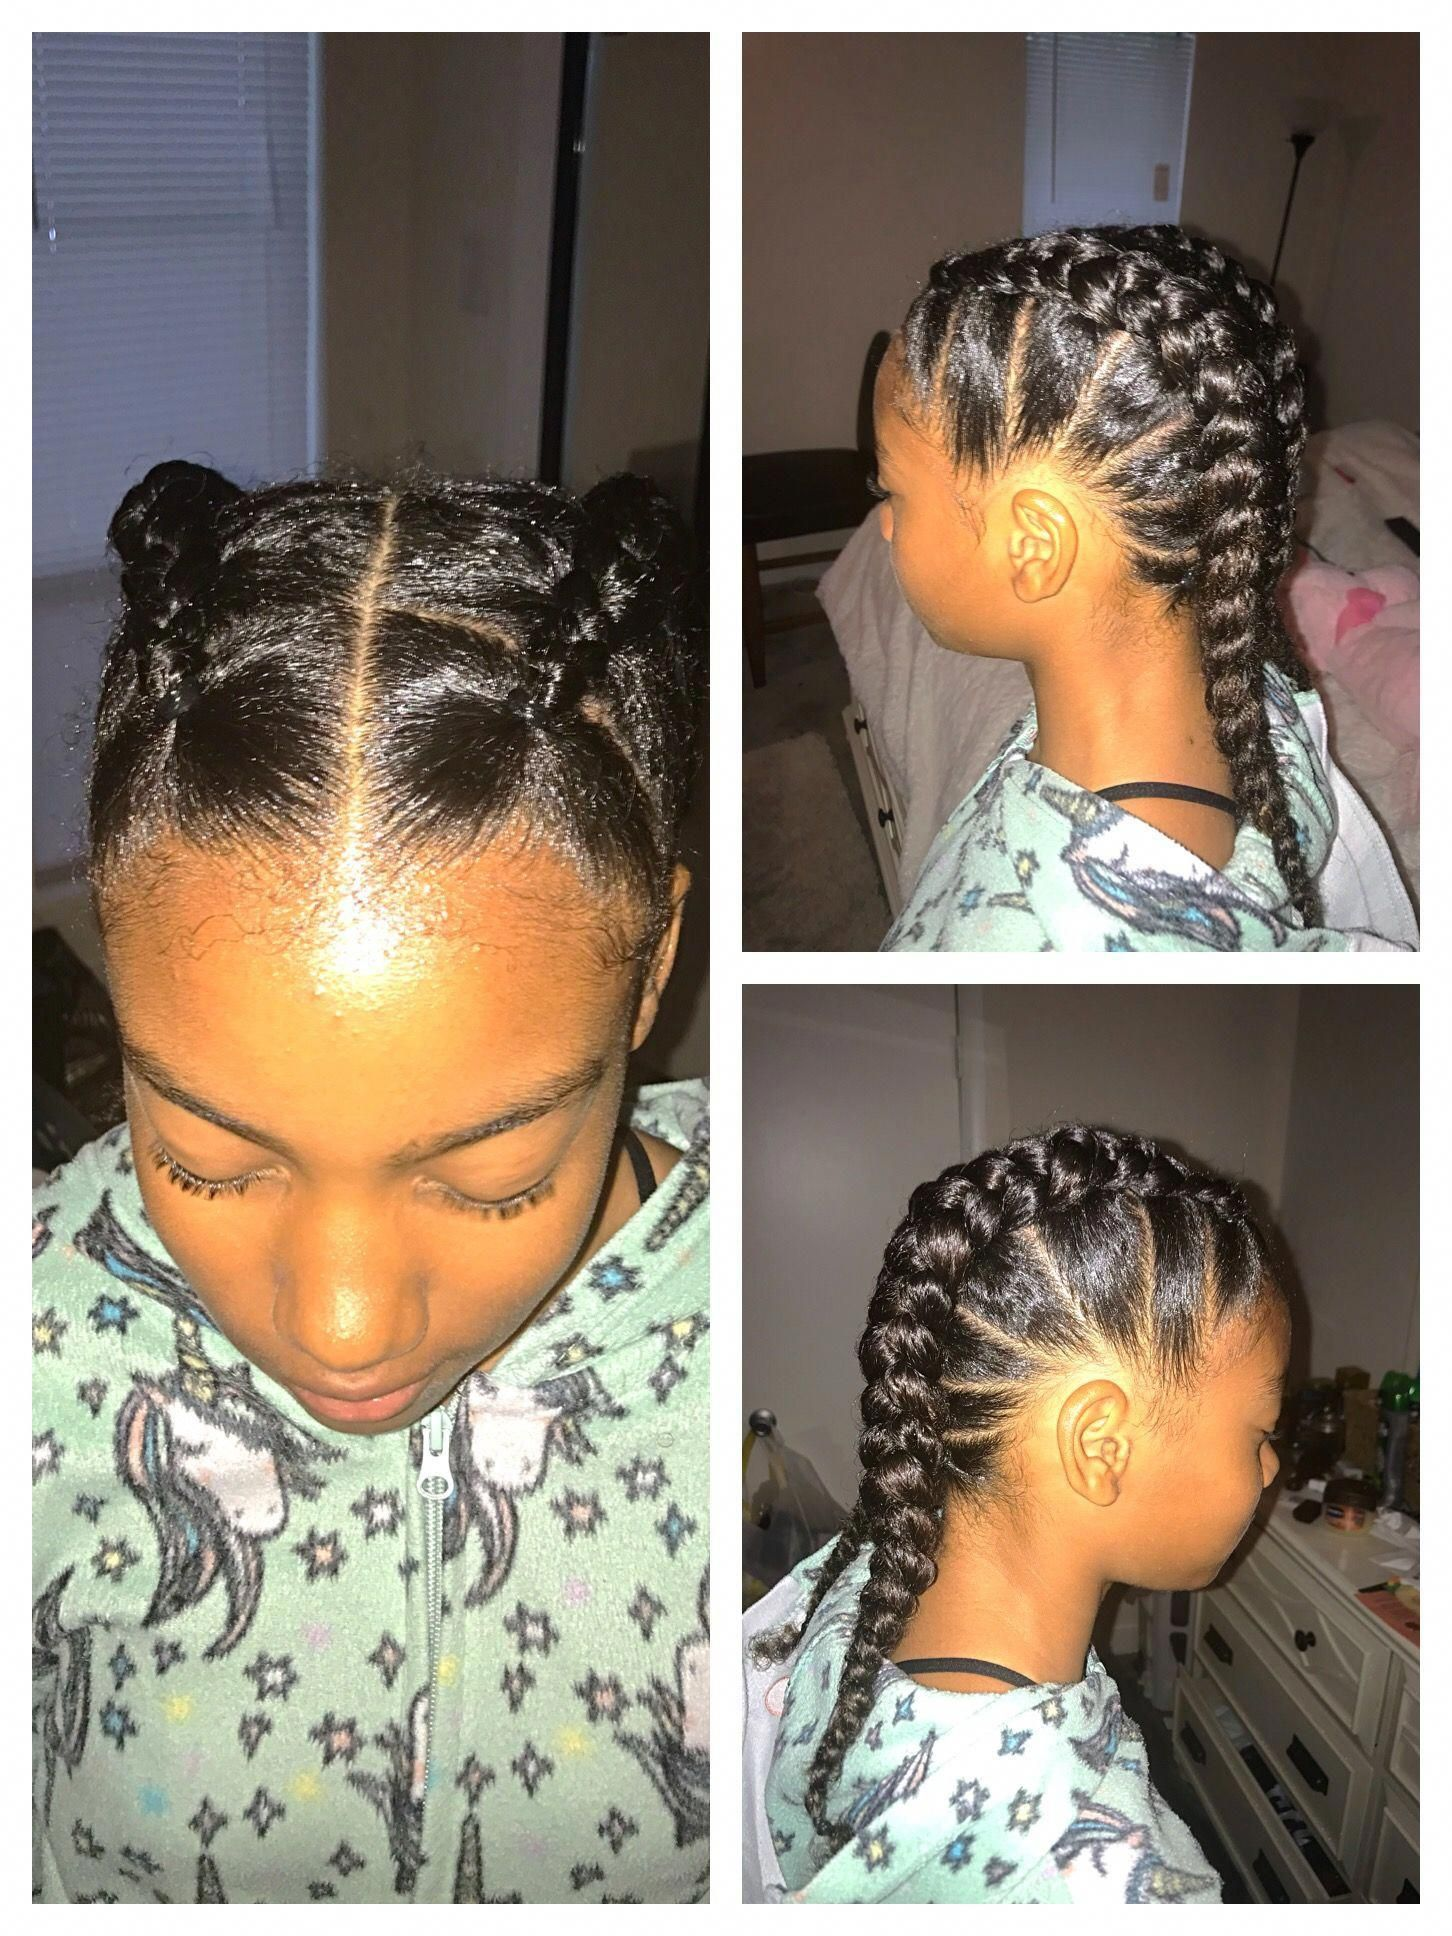 Braid Hairstyles For Black Women Children Littlegirlhairdos In 2020 Girls Hairstyles Braids Baby Girl Hairstyles Hair Styles